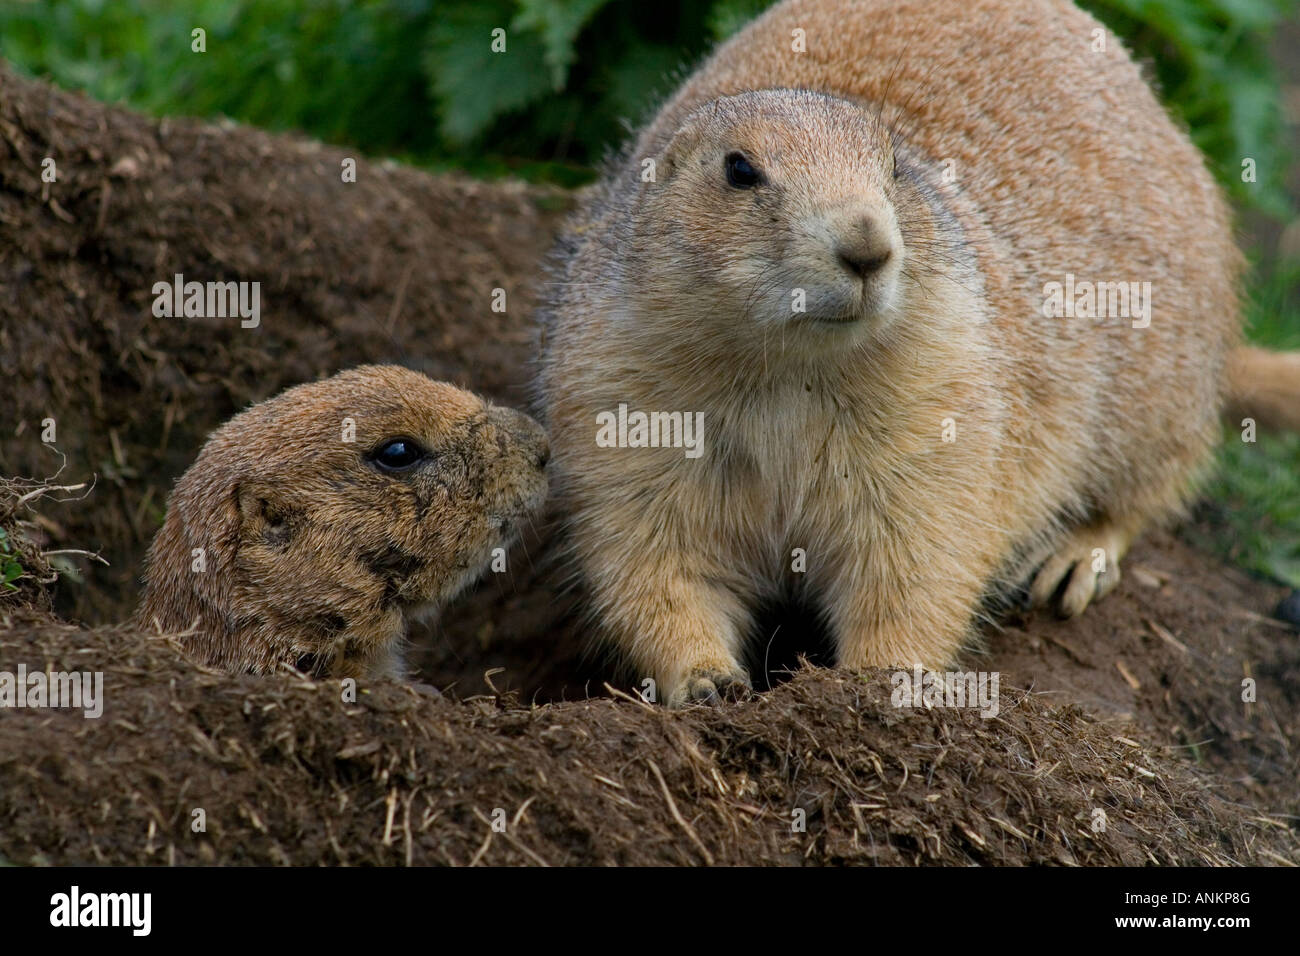 Two black tailed prairie dogs or marmots (cynomis ludovicianus) at Auchingarrich Wildlife Centre in Scotland. - Stock Image